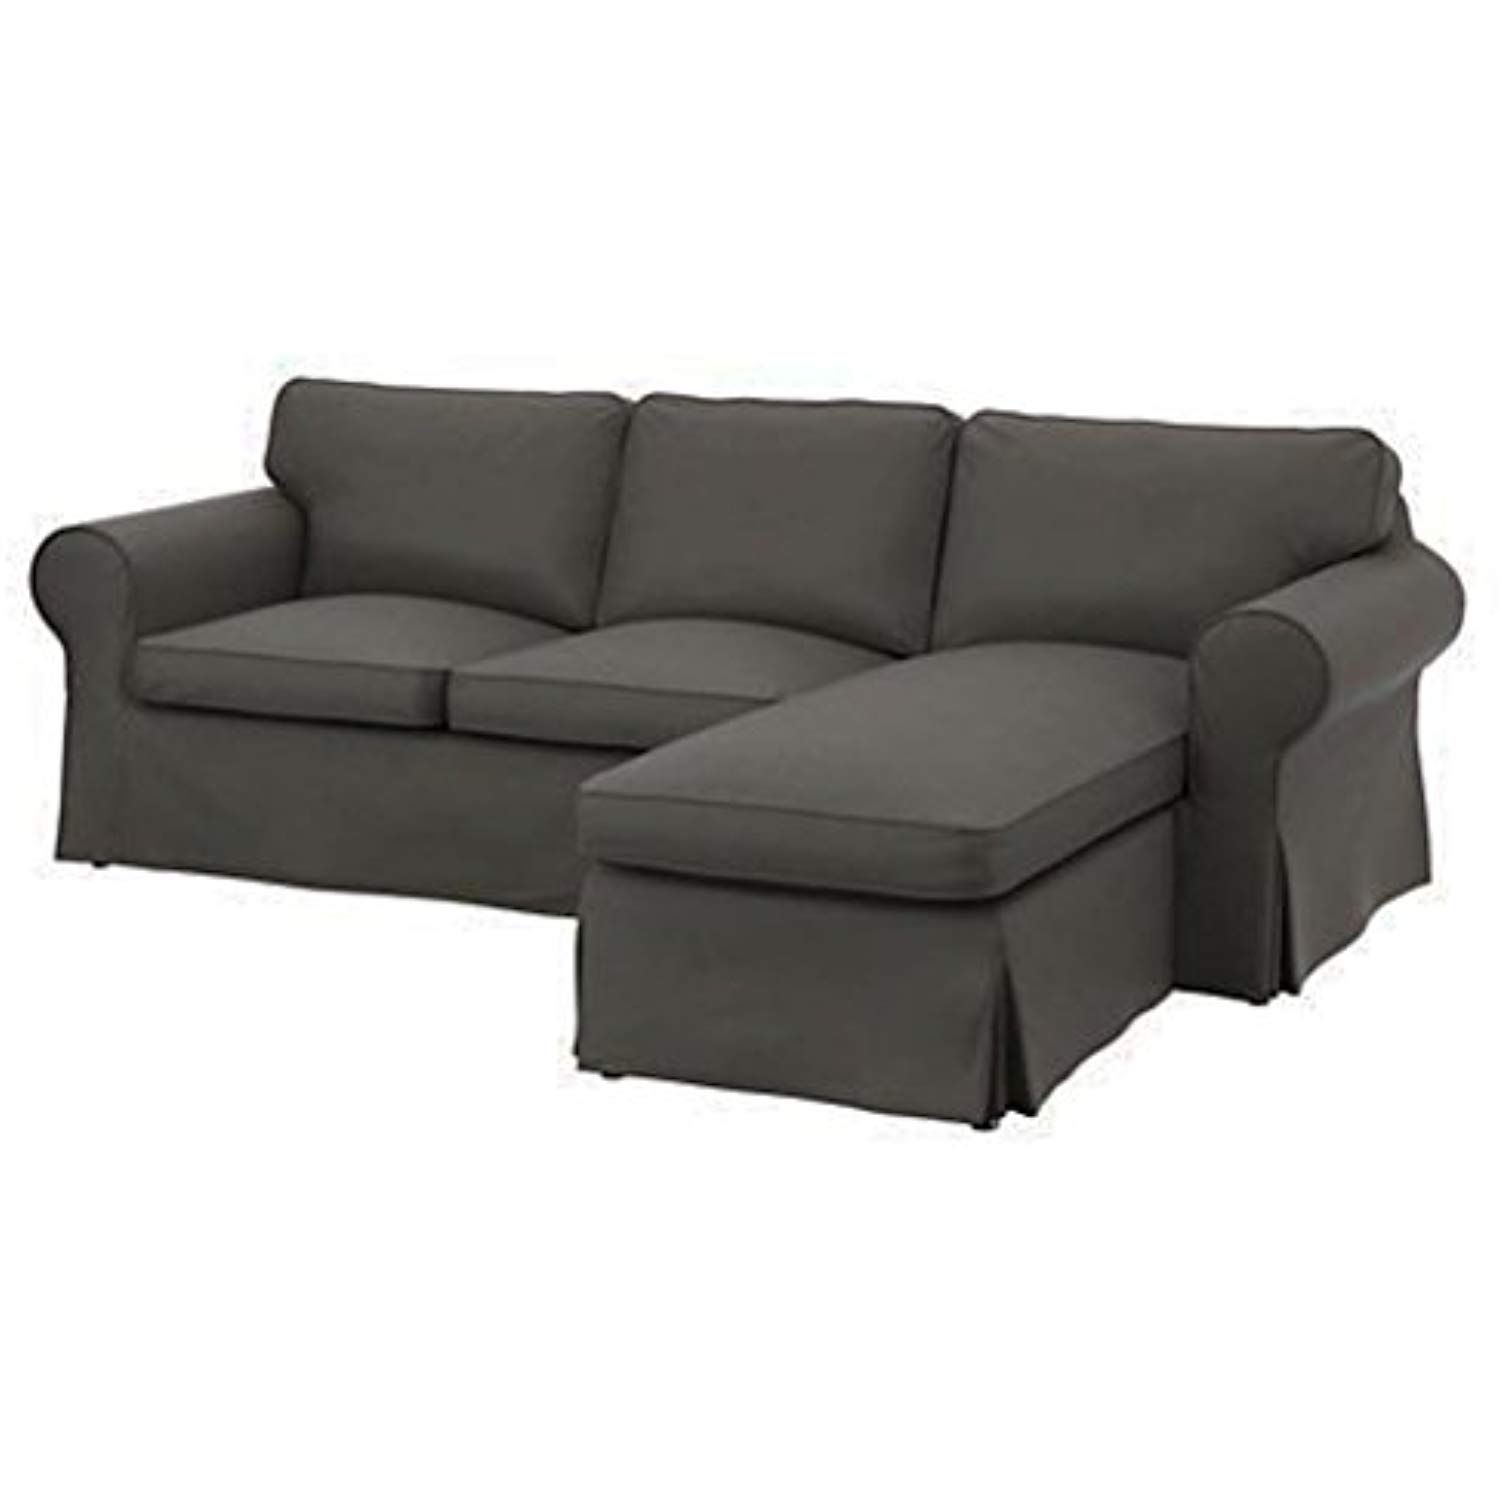 The Dense Cotton Ektorp Loveseat 2 Seater With Chaise Lounge Cover Replacement Is Custom Made For Ikea Ektorp Two S Ikea Ektorp Ektorp Sofa Slipcovered Sofa